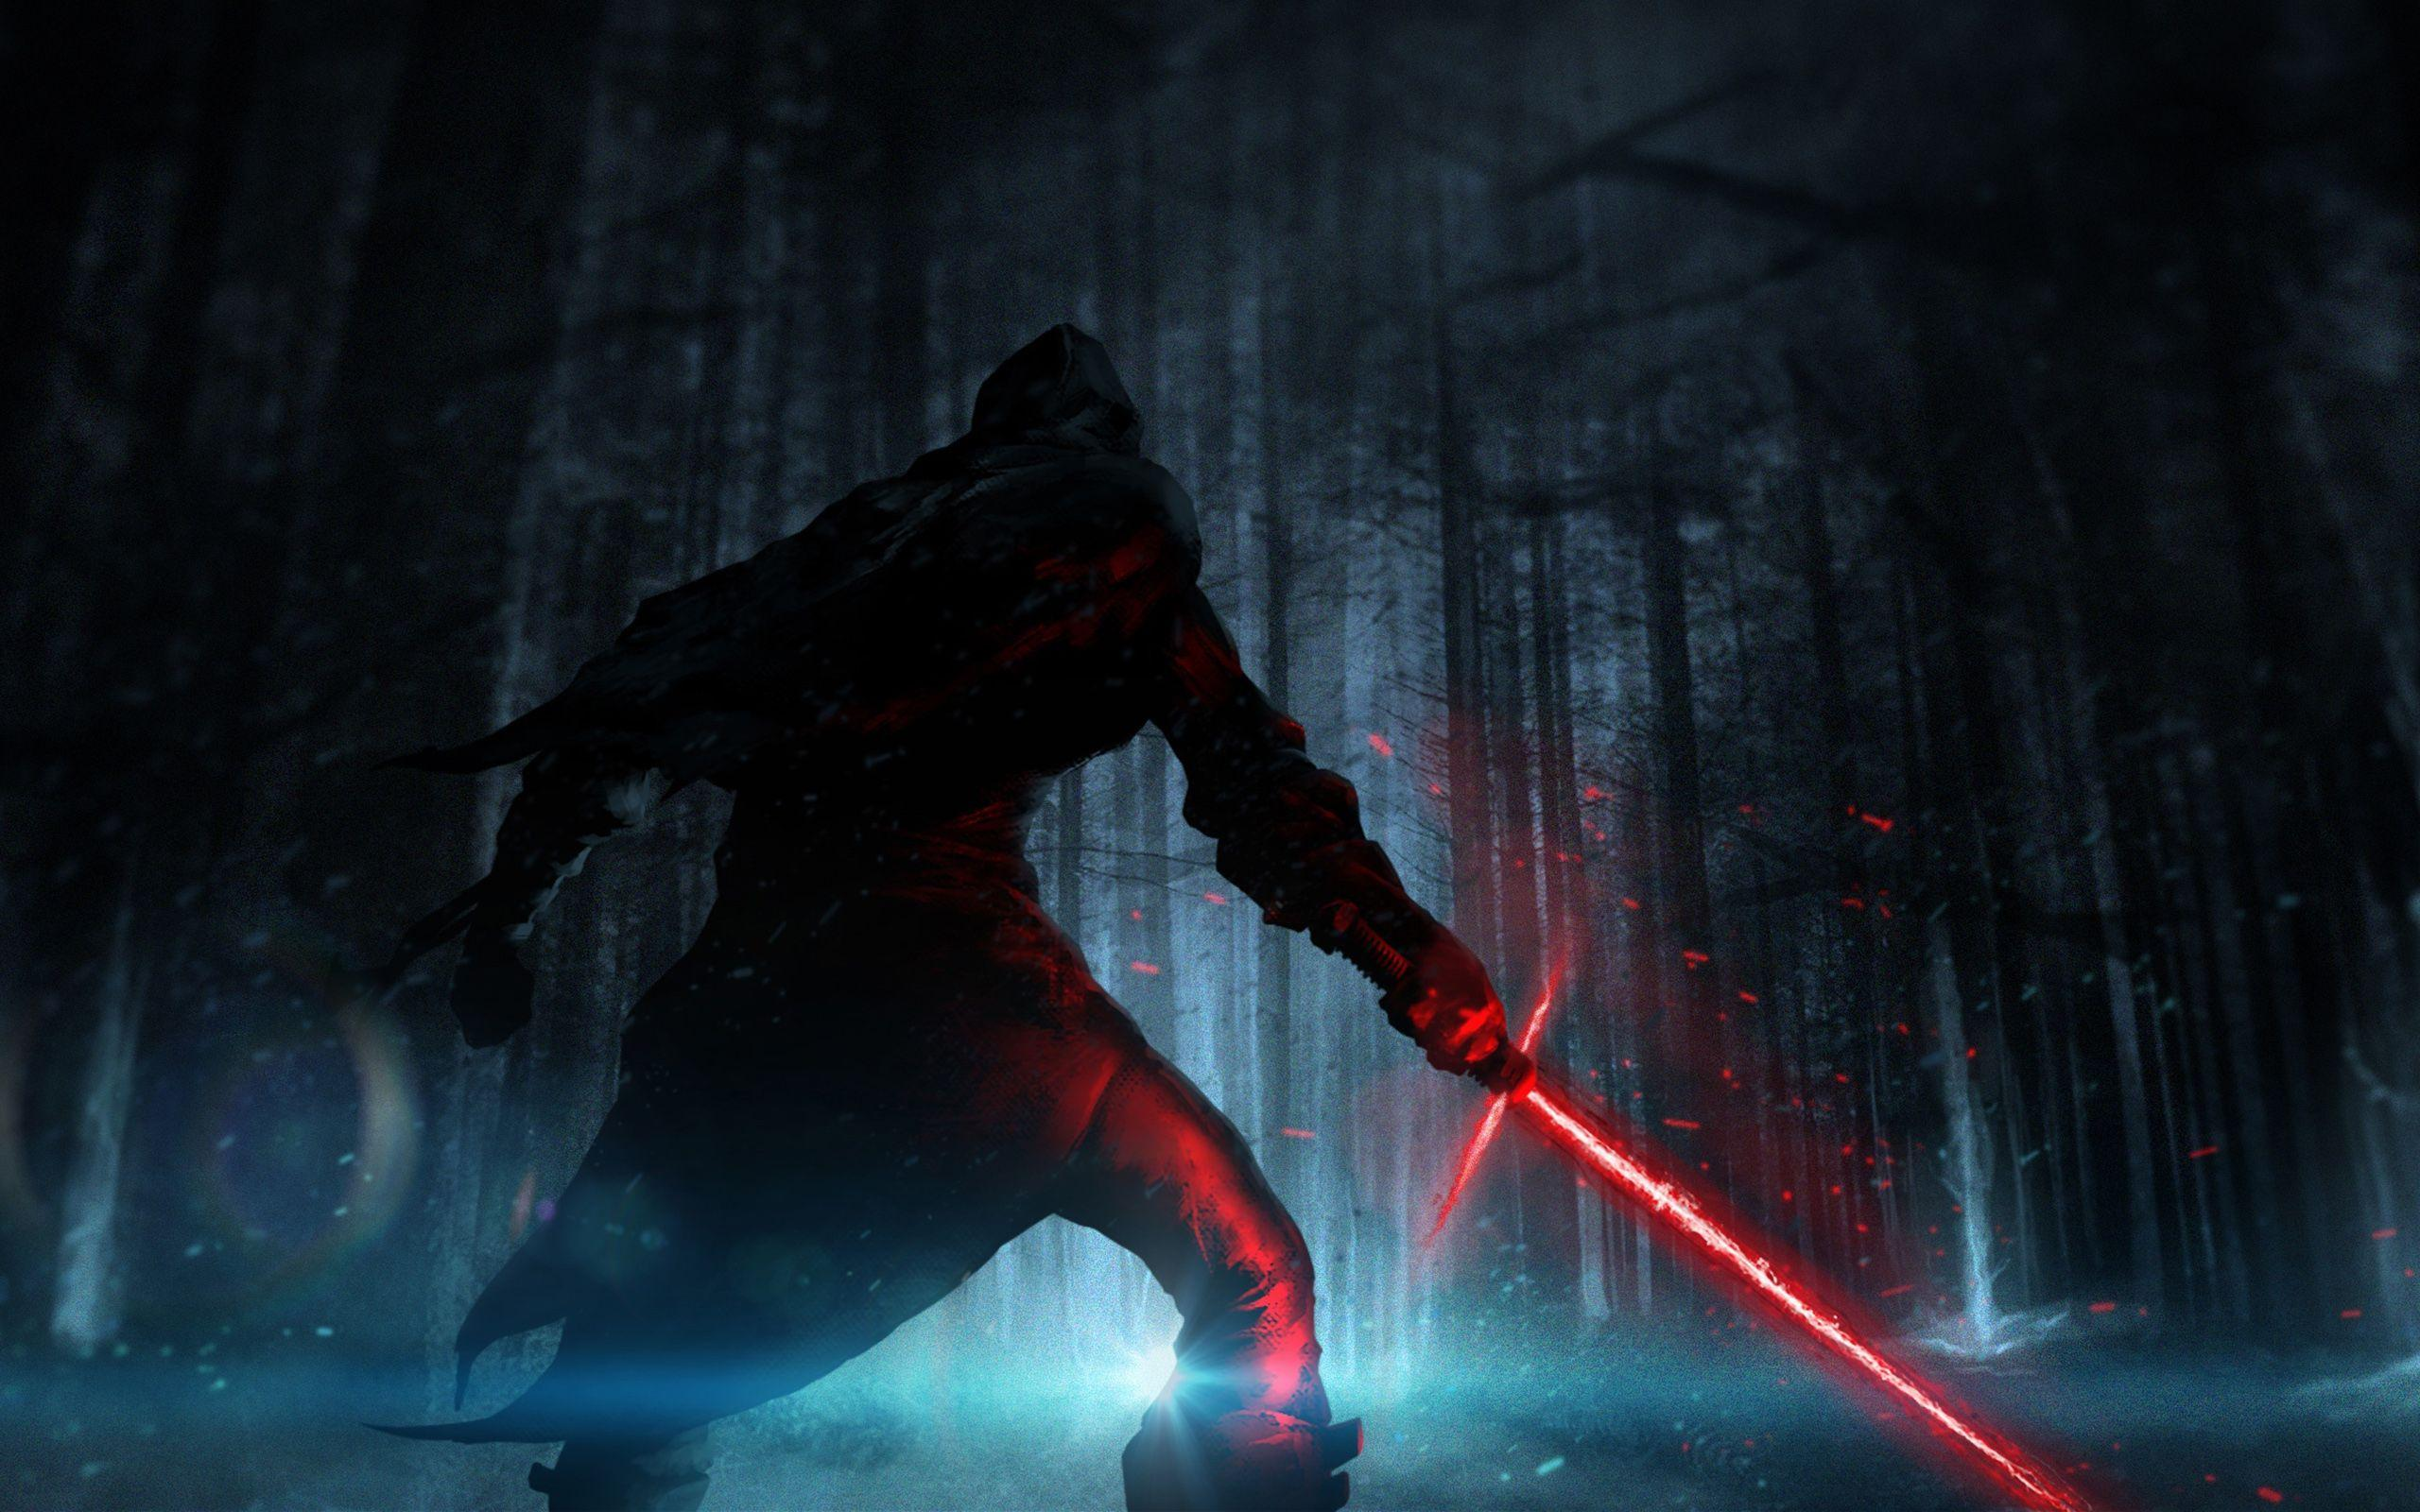 Star Wars 7 Wallpapers Hd Wallpaper Cave